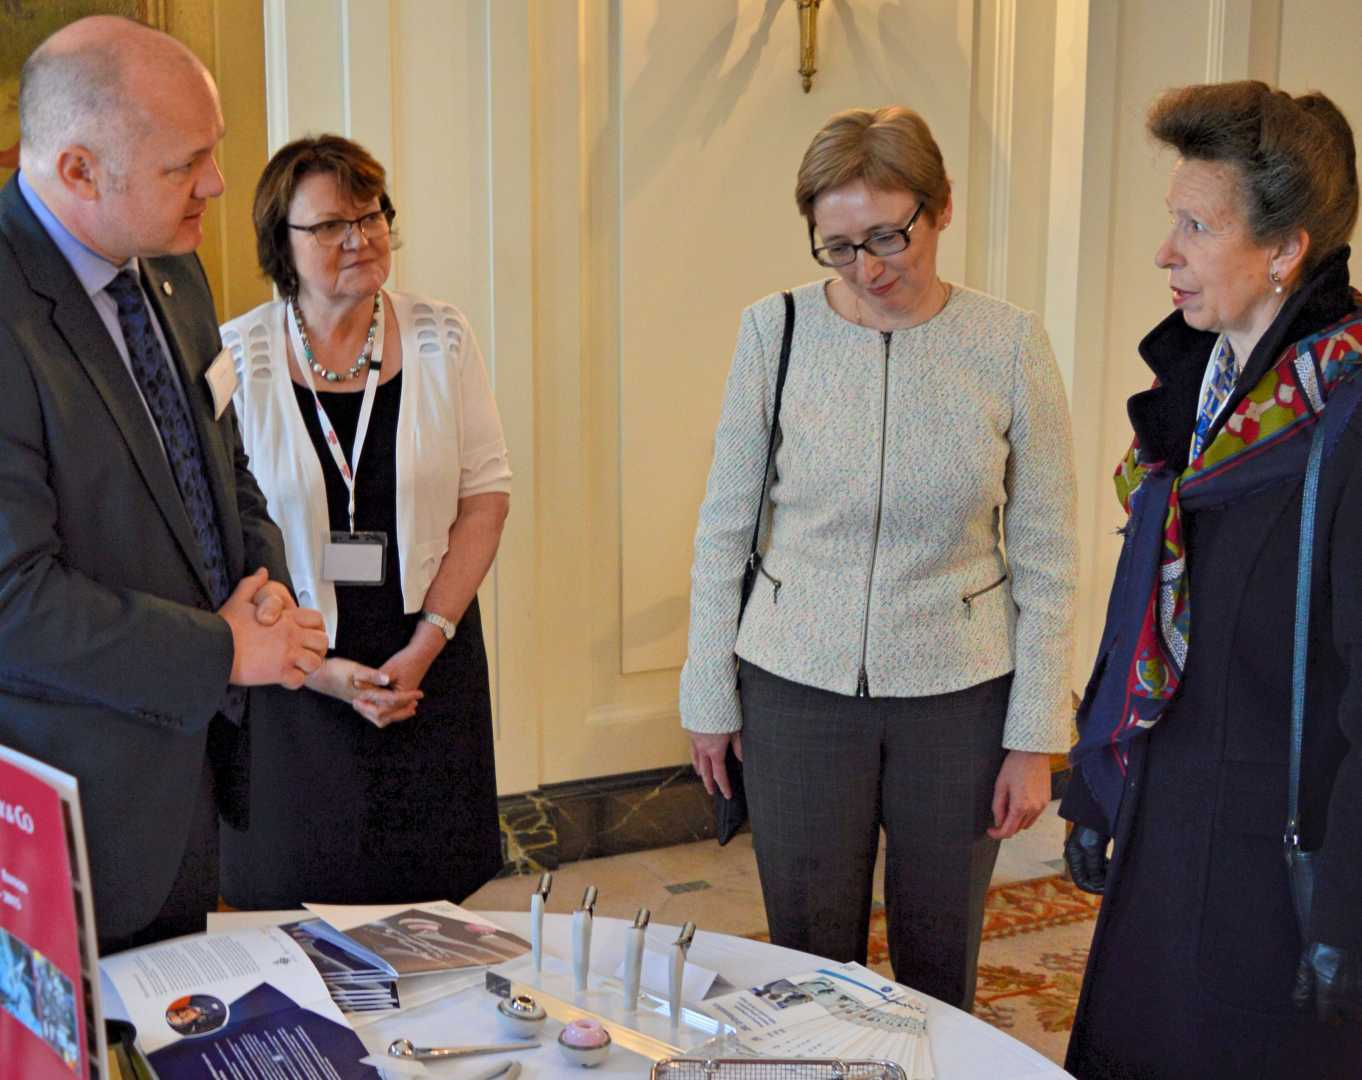 Keith Jackson (JRI Orthopaedics) meets HRH The Princess Royal at the British Residence in Brussels as part of celebrations marking the 100th anniversary of the death of British nurse Edith Cavell.